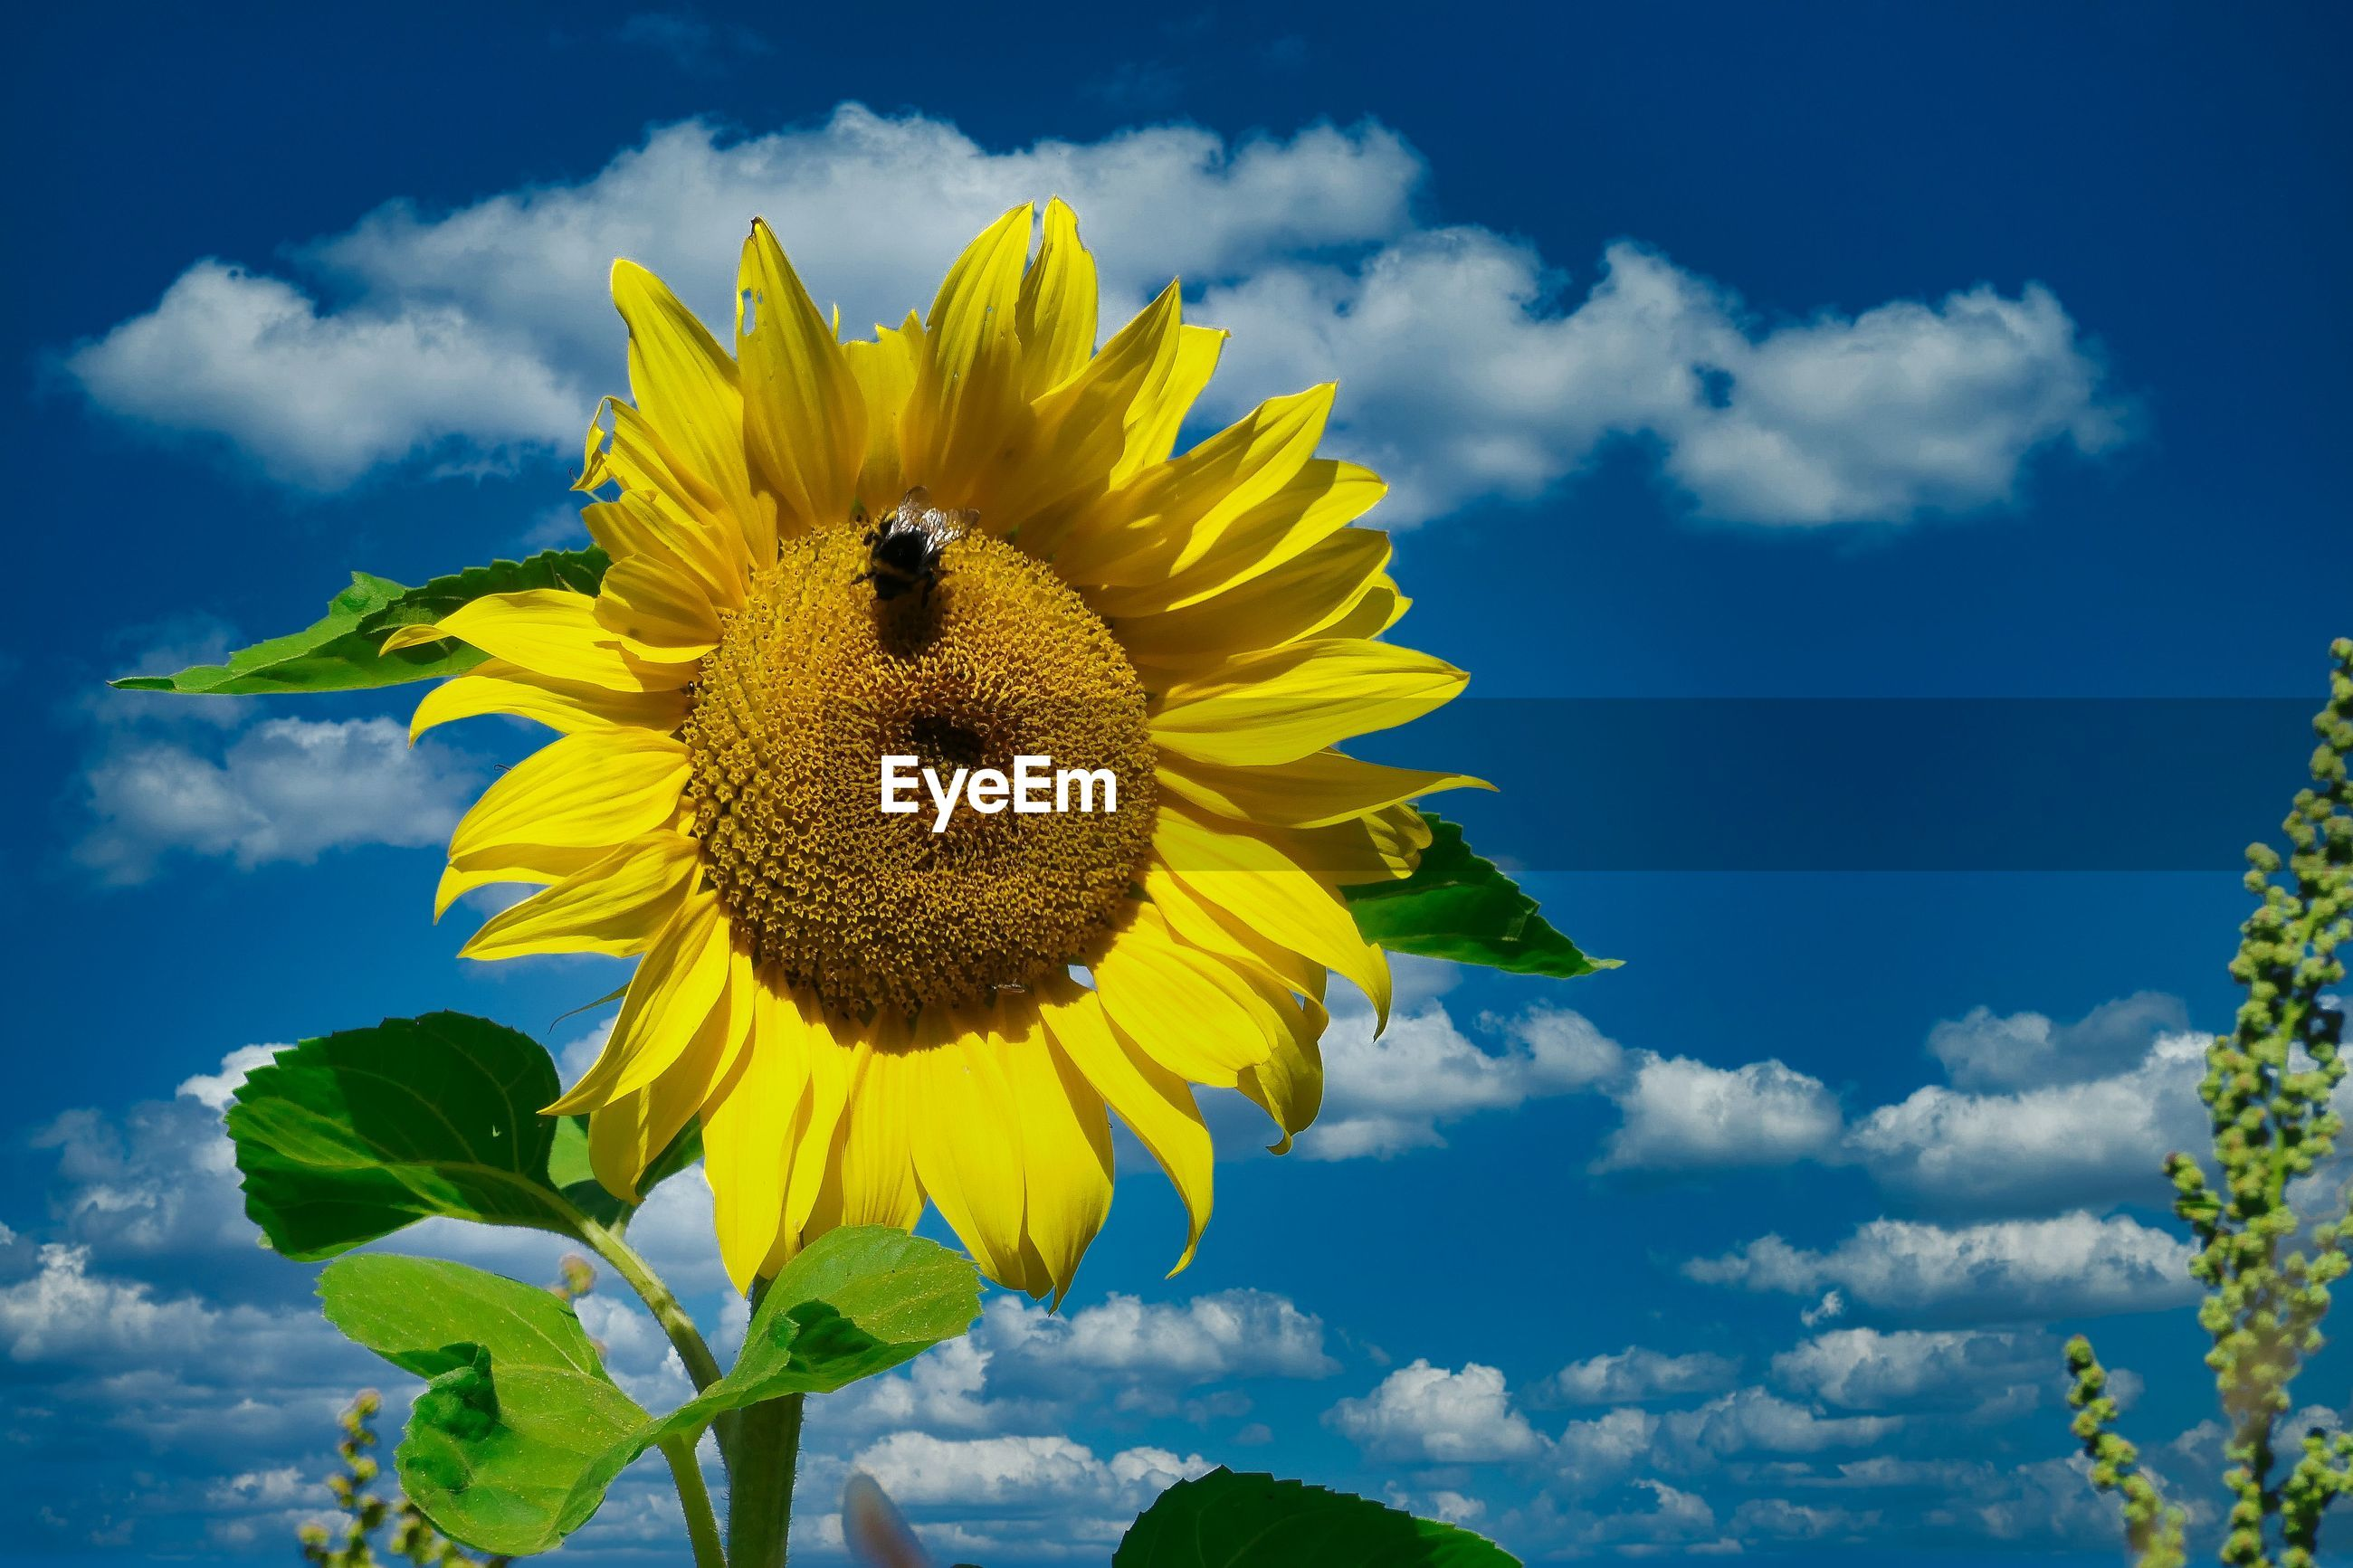 LOW ANGLE VIEW OF SUNFLOWER